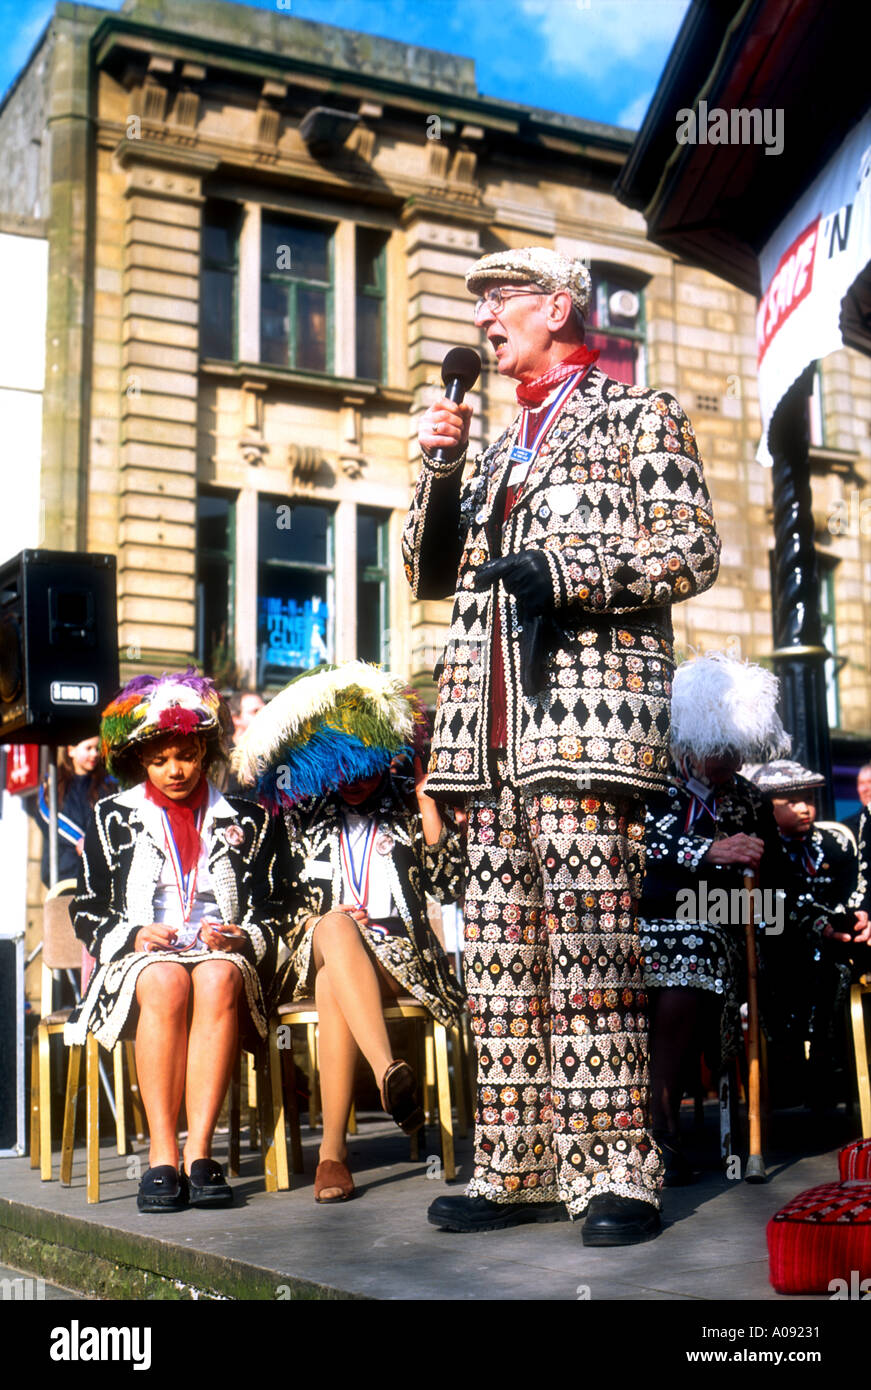 A Pearly King addressing those attending the coronation of London s Honourary Pearly King and Queen of Lancashire in Burnley - Stock Image